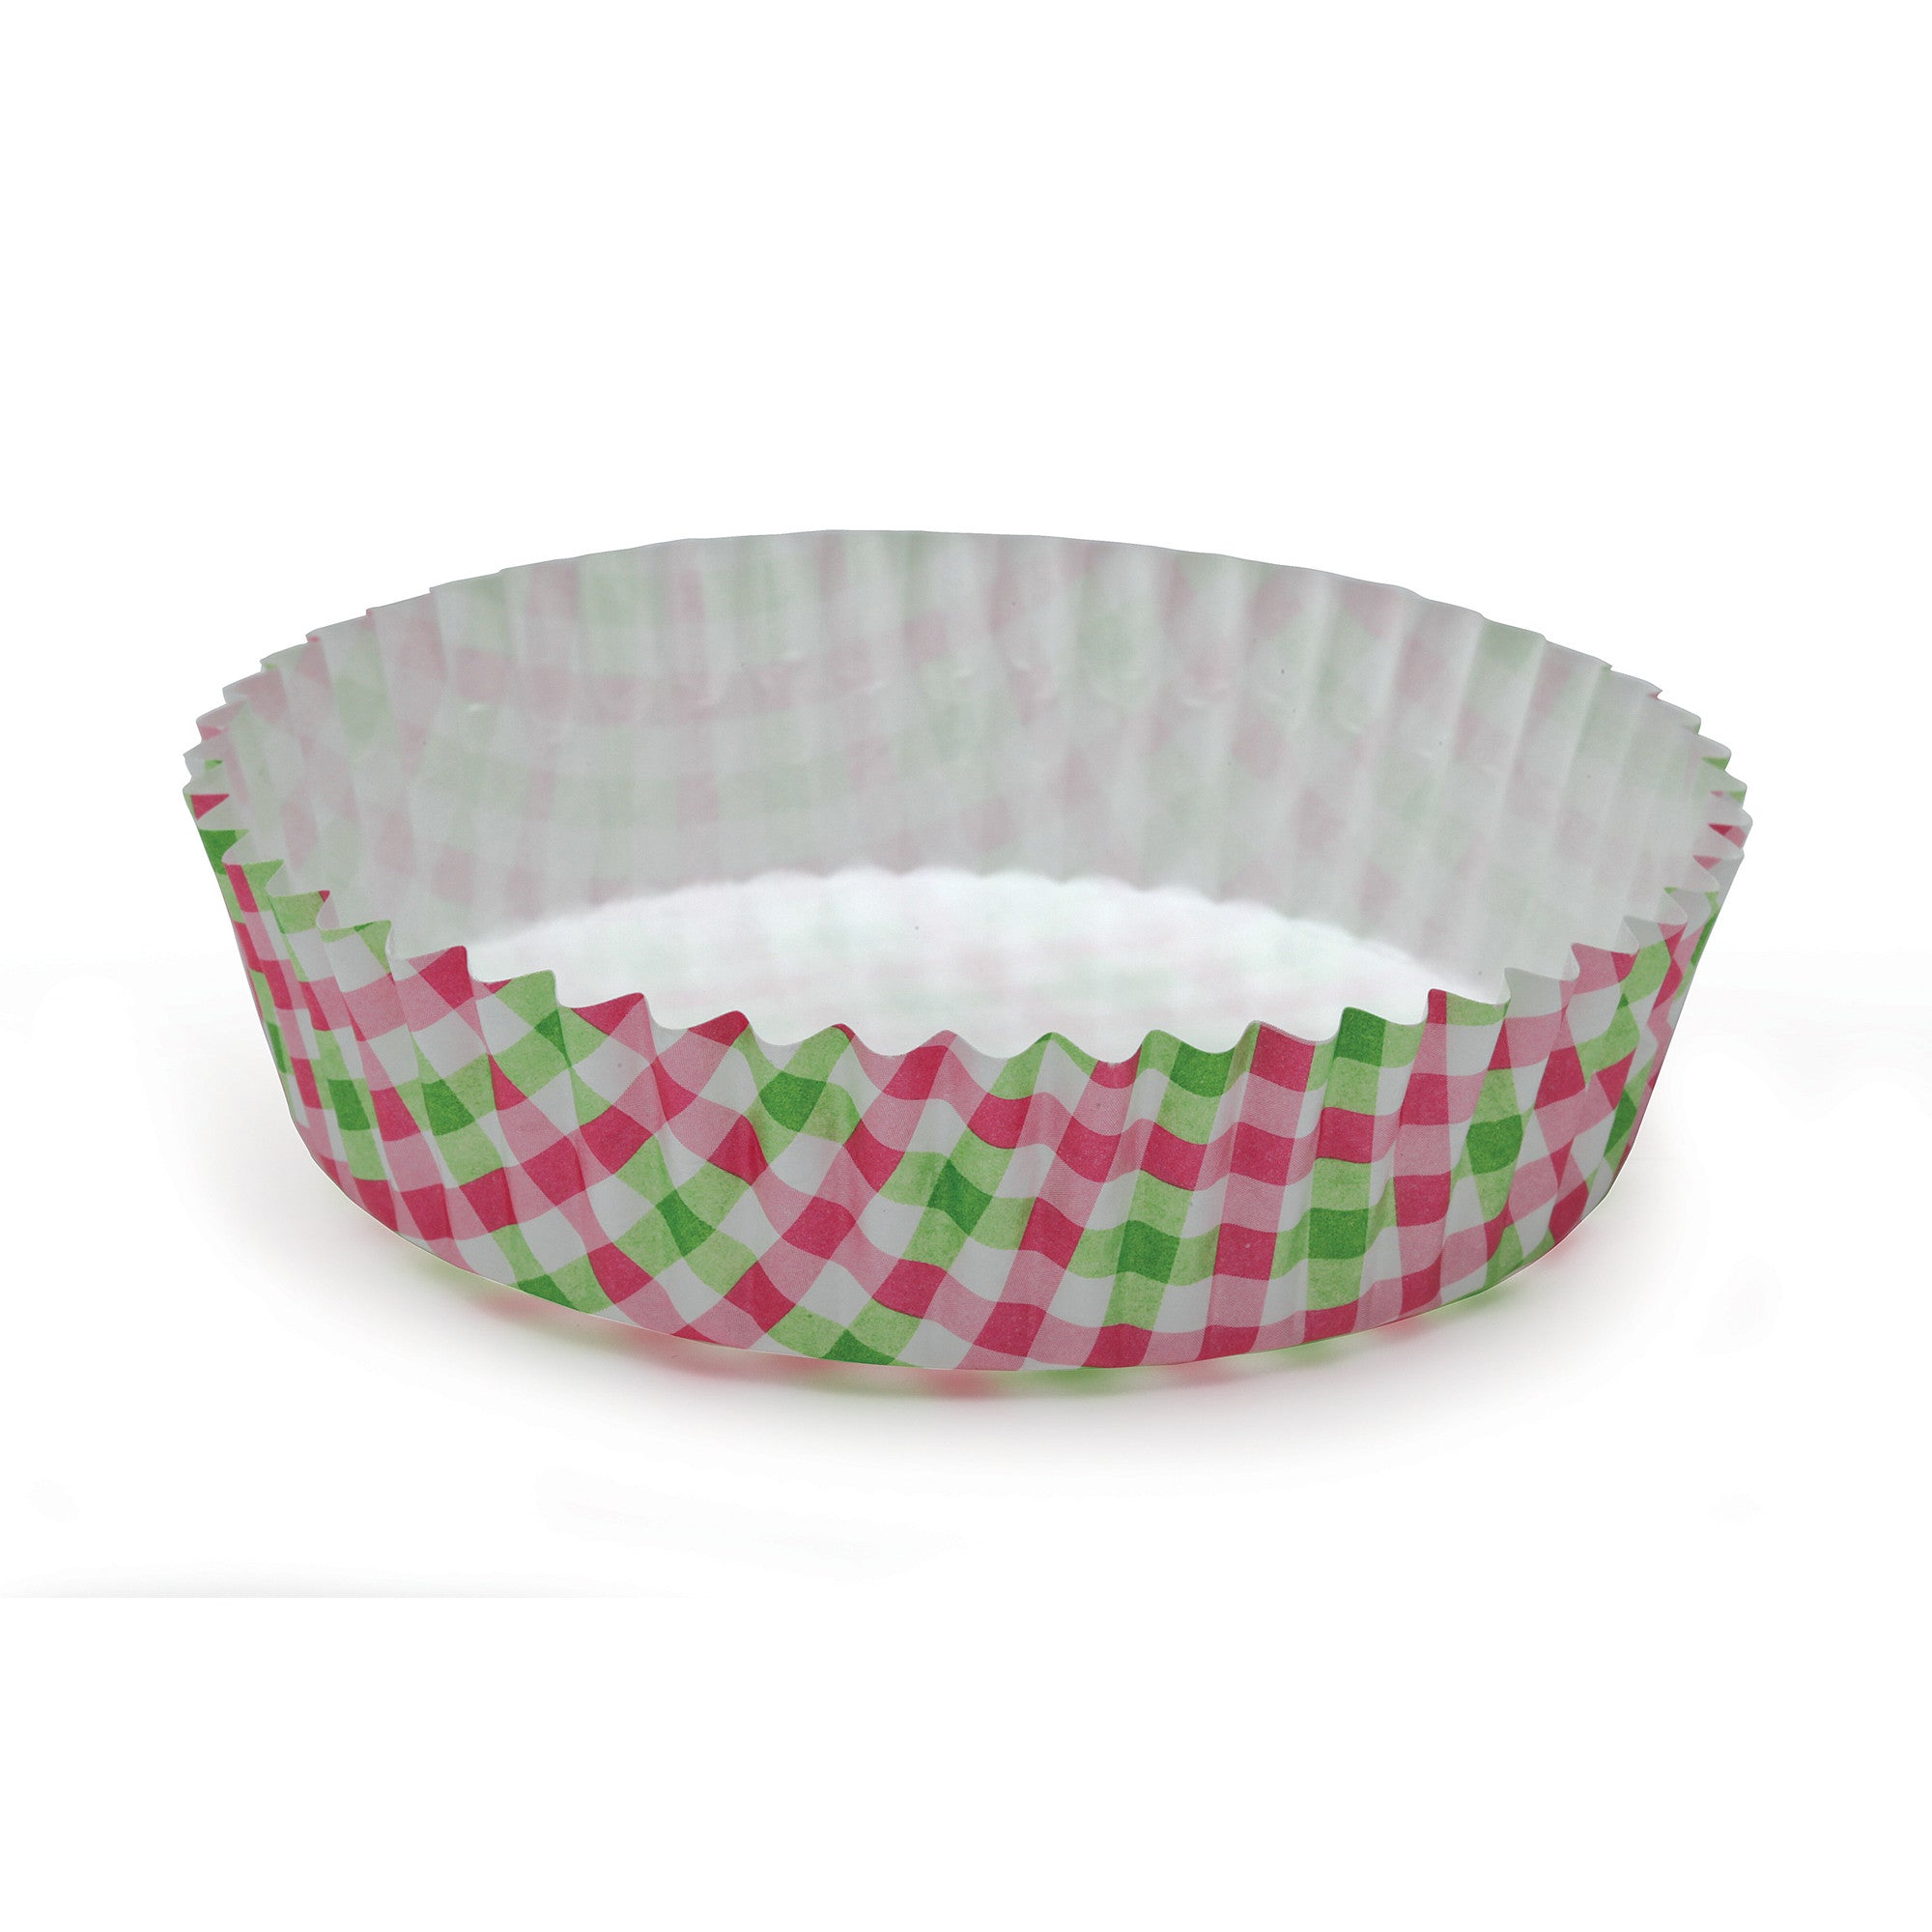 Ruffled Baking Cups, Pink & Green Gingham - Paper Bake Shop